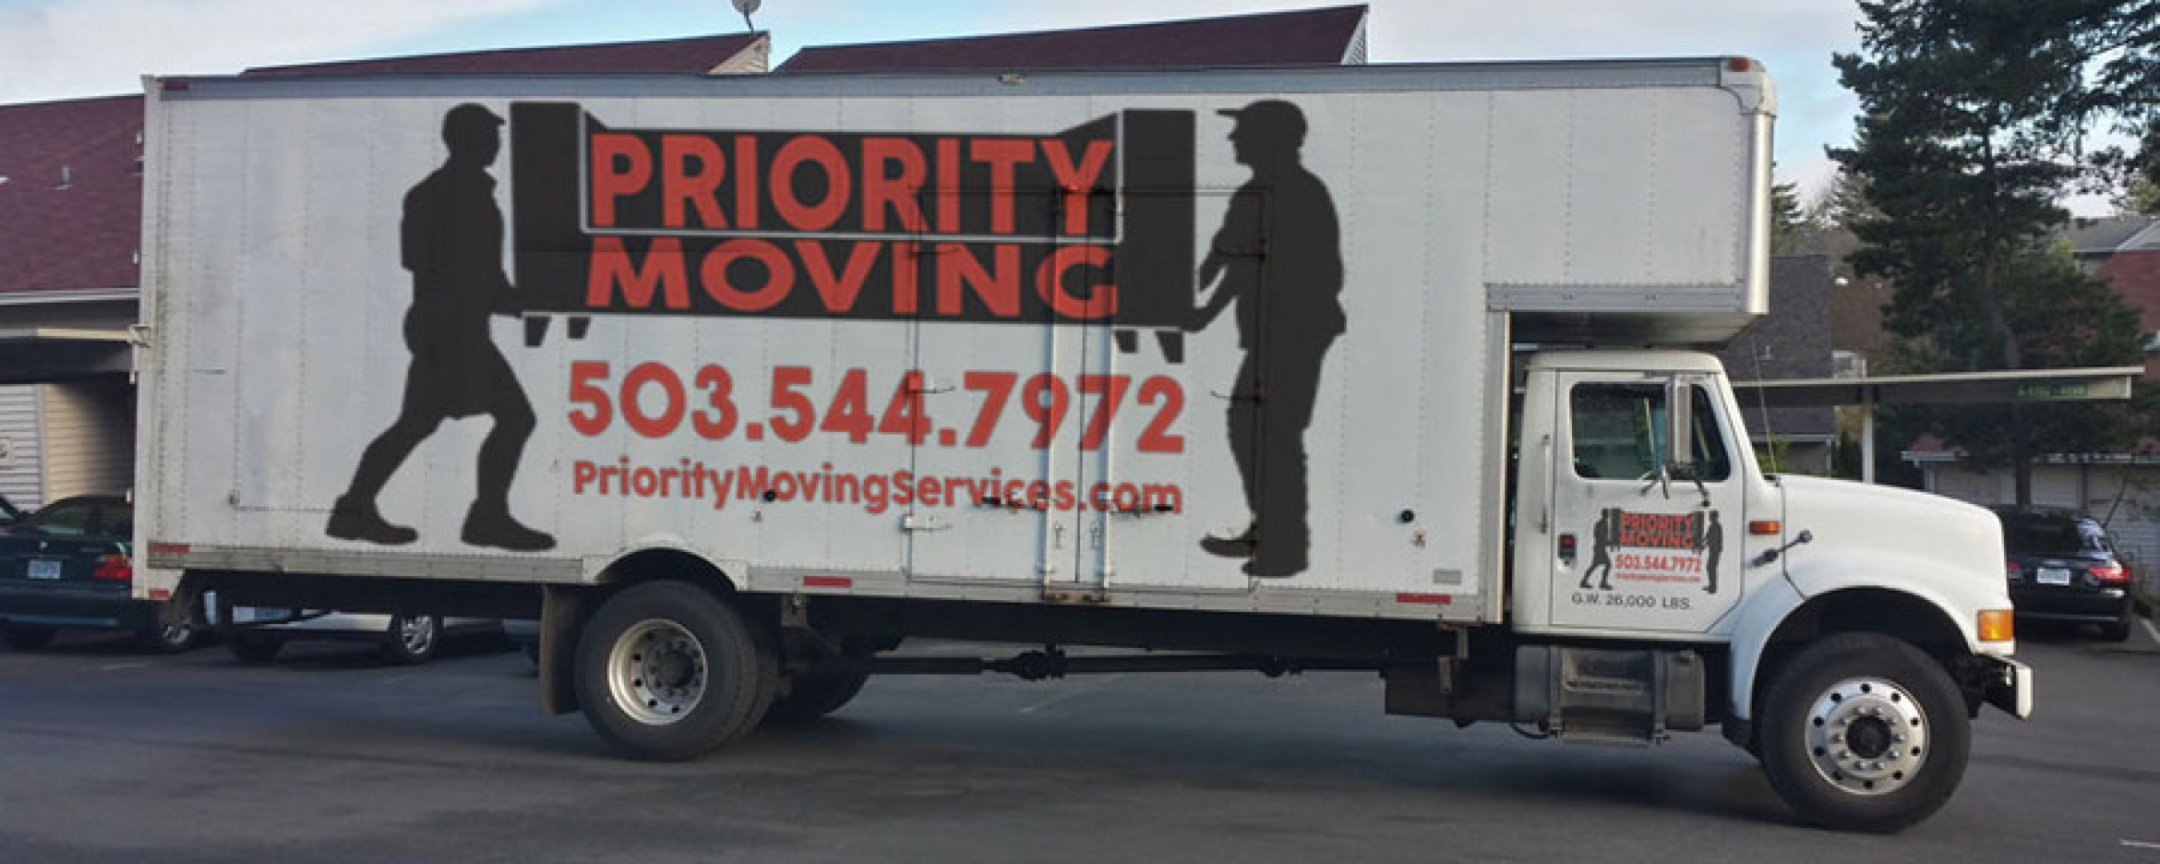 Priority Moving Services truck with logo and 503.544.7972 phone number